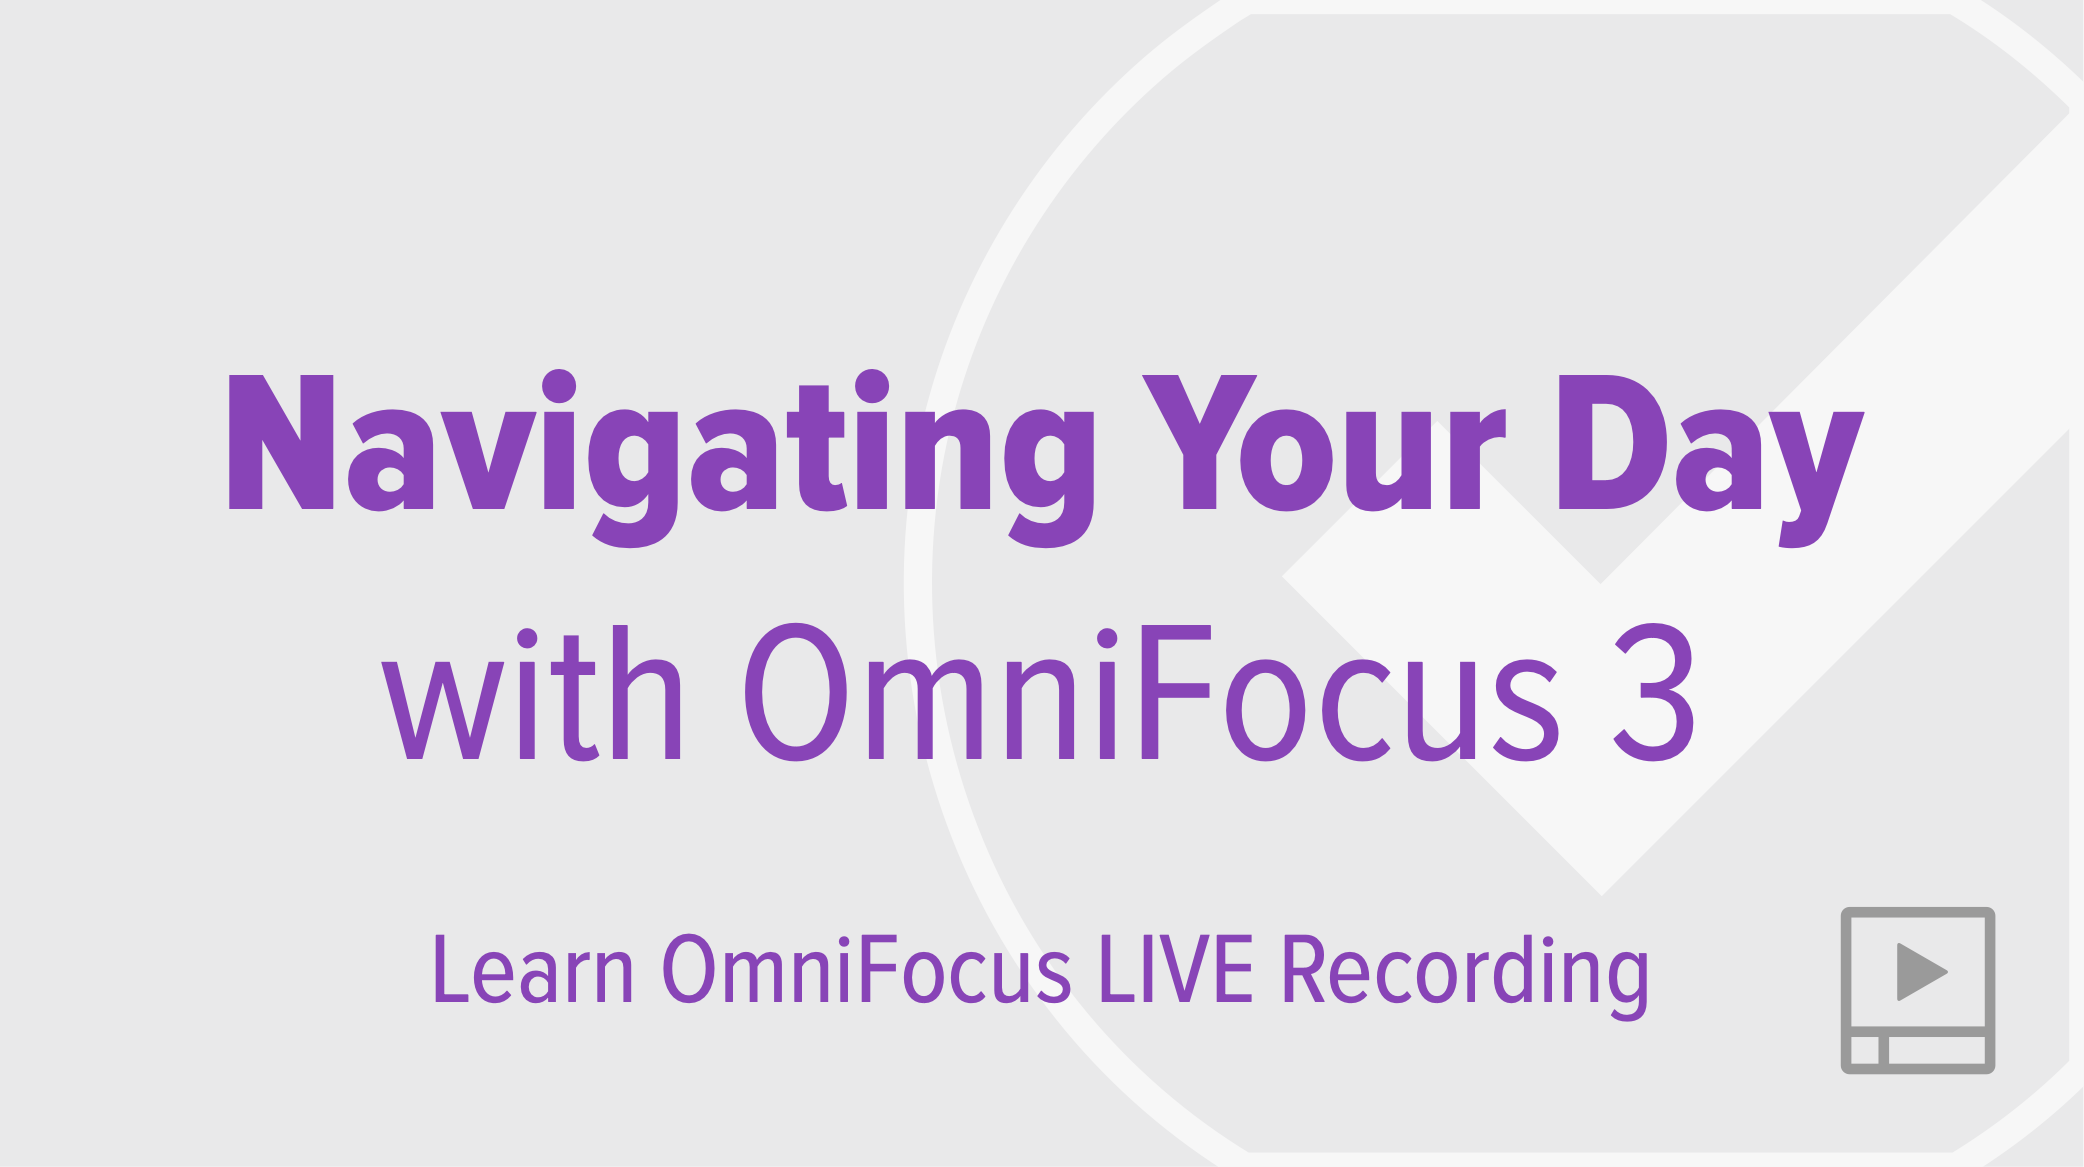 Navigating Your Day with OmniFocus 3